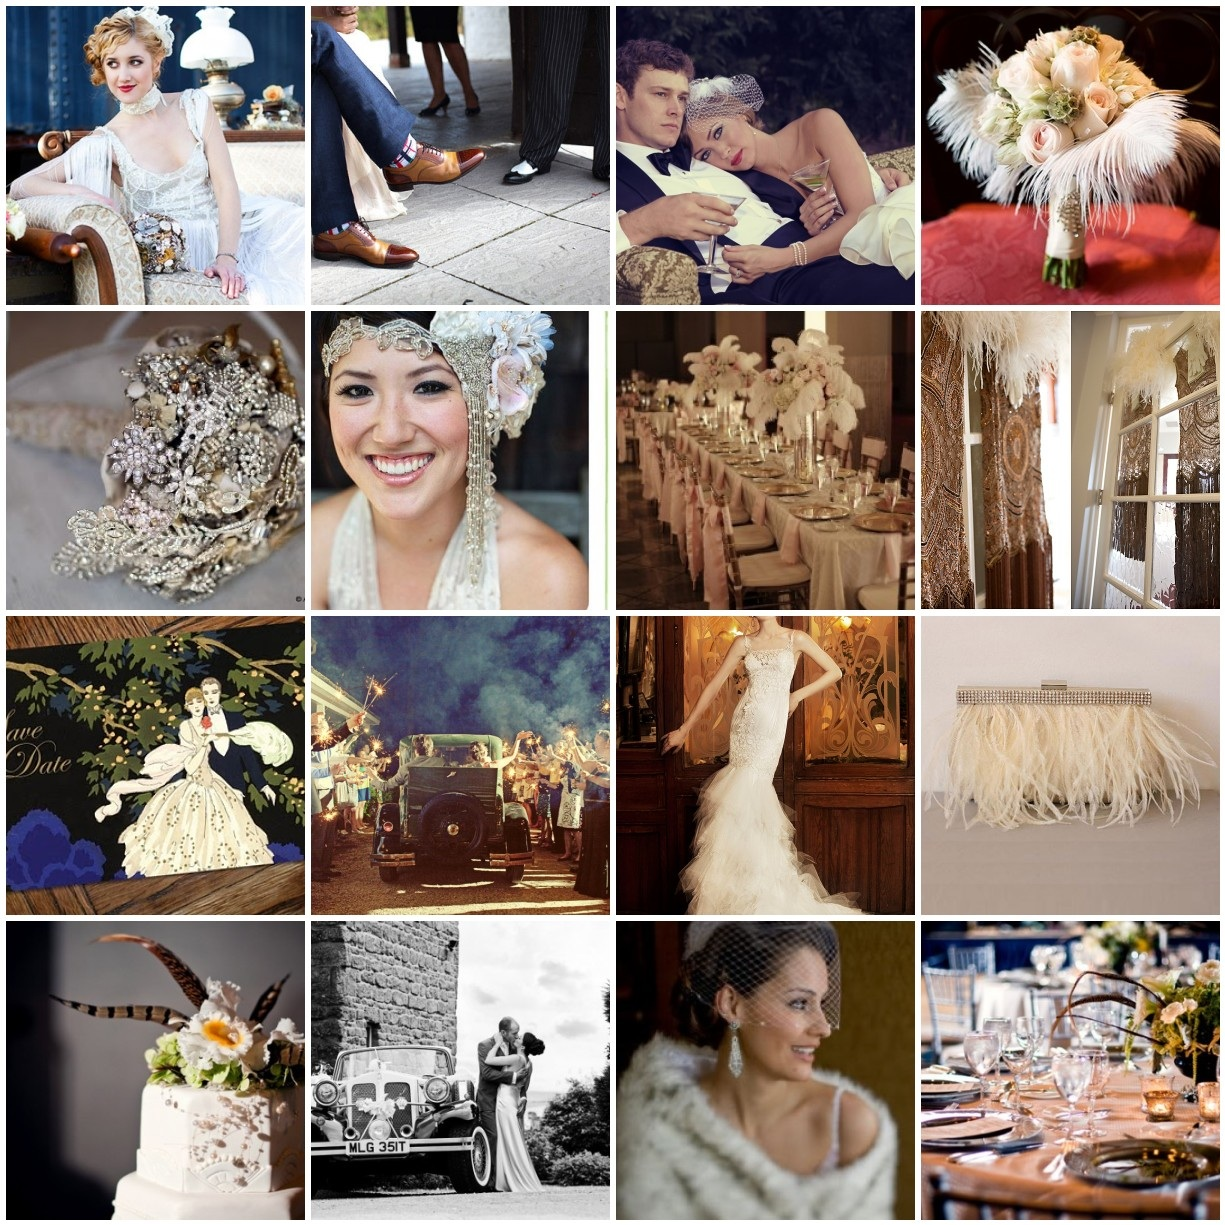 1920s Vintage Wedding Ideas: Lovelies And Lace: 1920's Glam Inspired Wedding